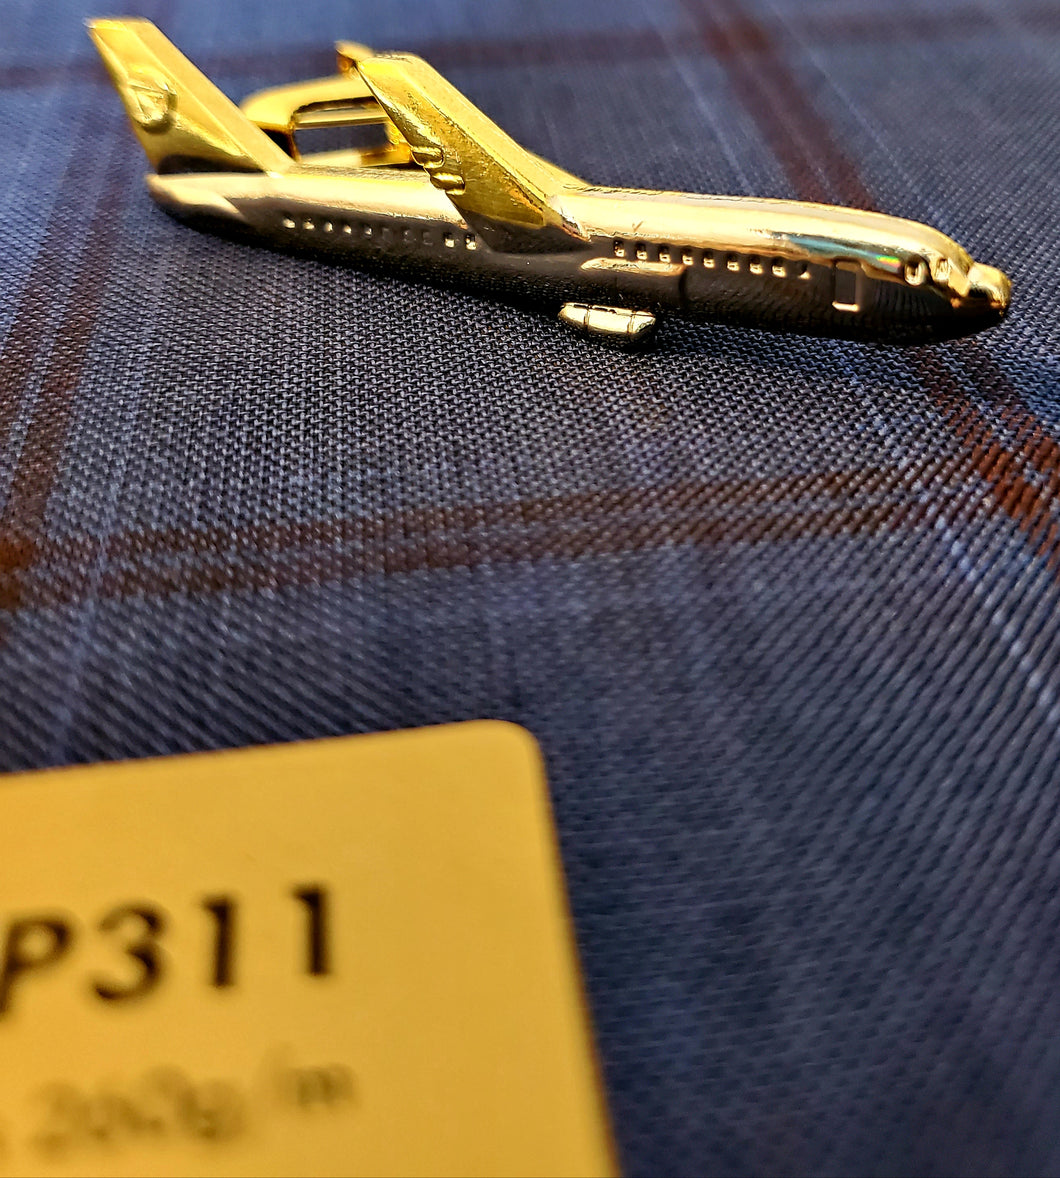 Airplane Tie Clip - French Thread